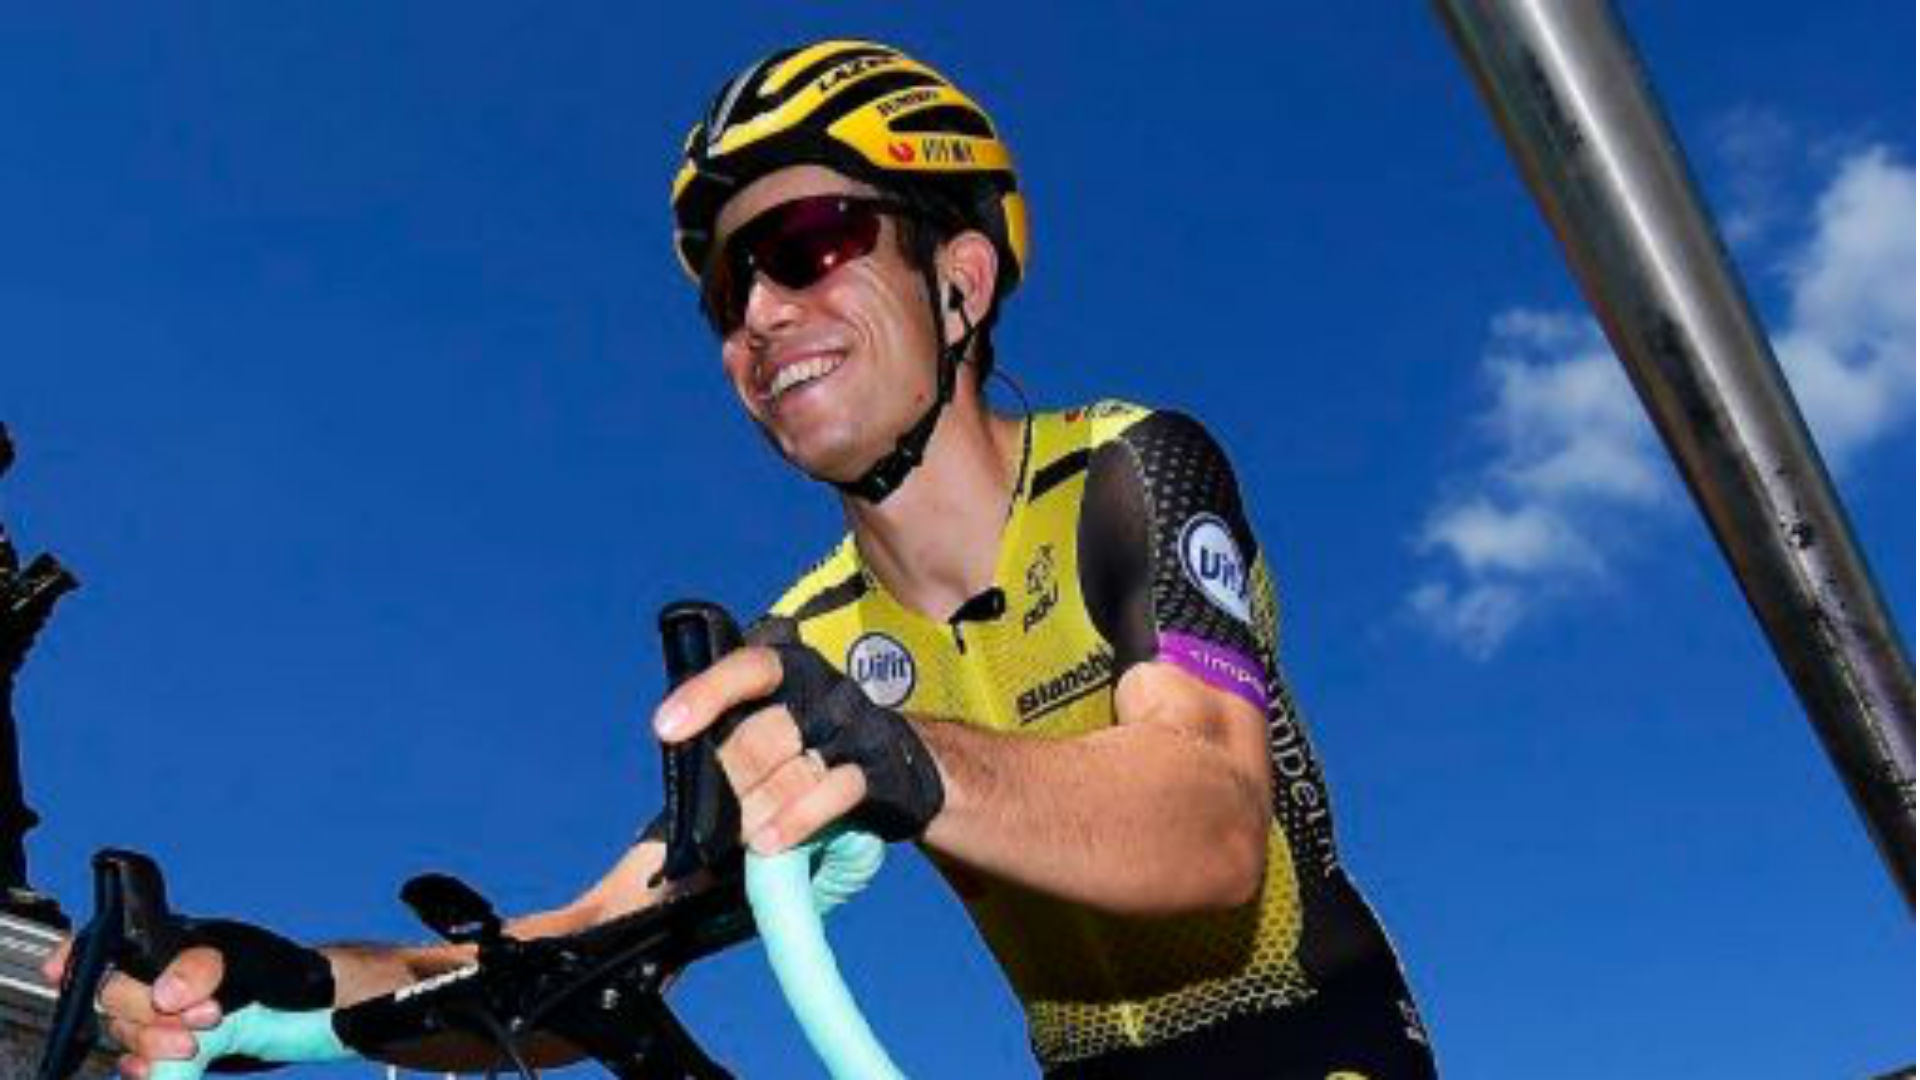 Debutant Van Aert claims maiden Tour win as Alaphilippe sees rivals suffer